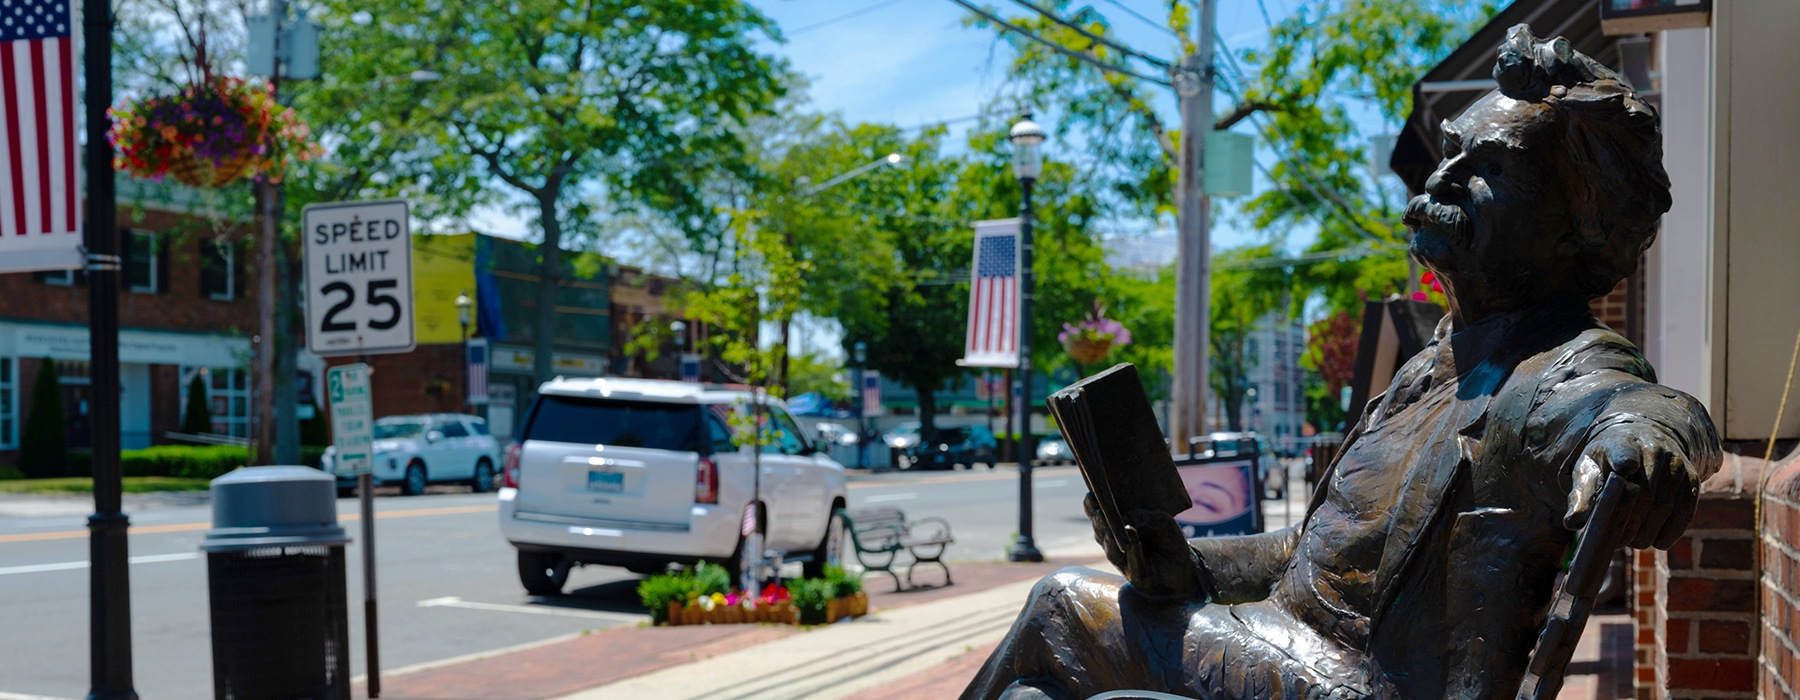 sunny day street and sidewalk image with bronze statue of man sitting on a bendch